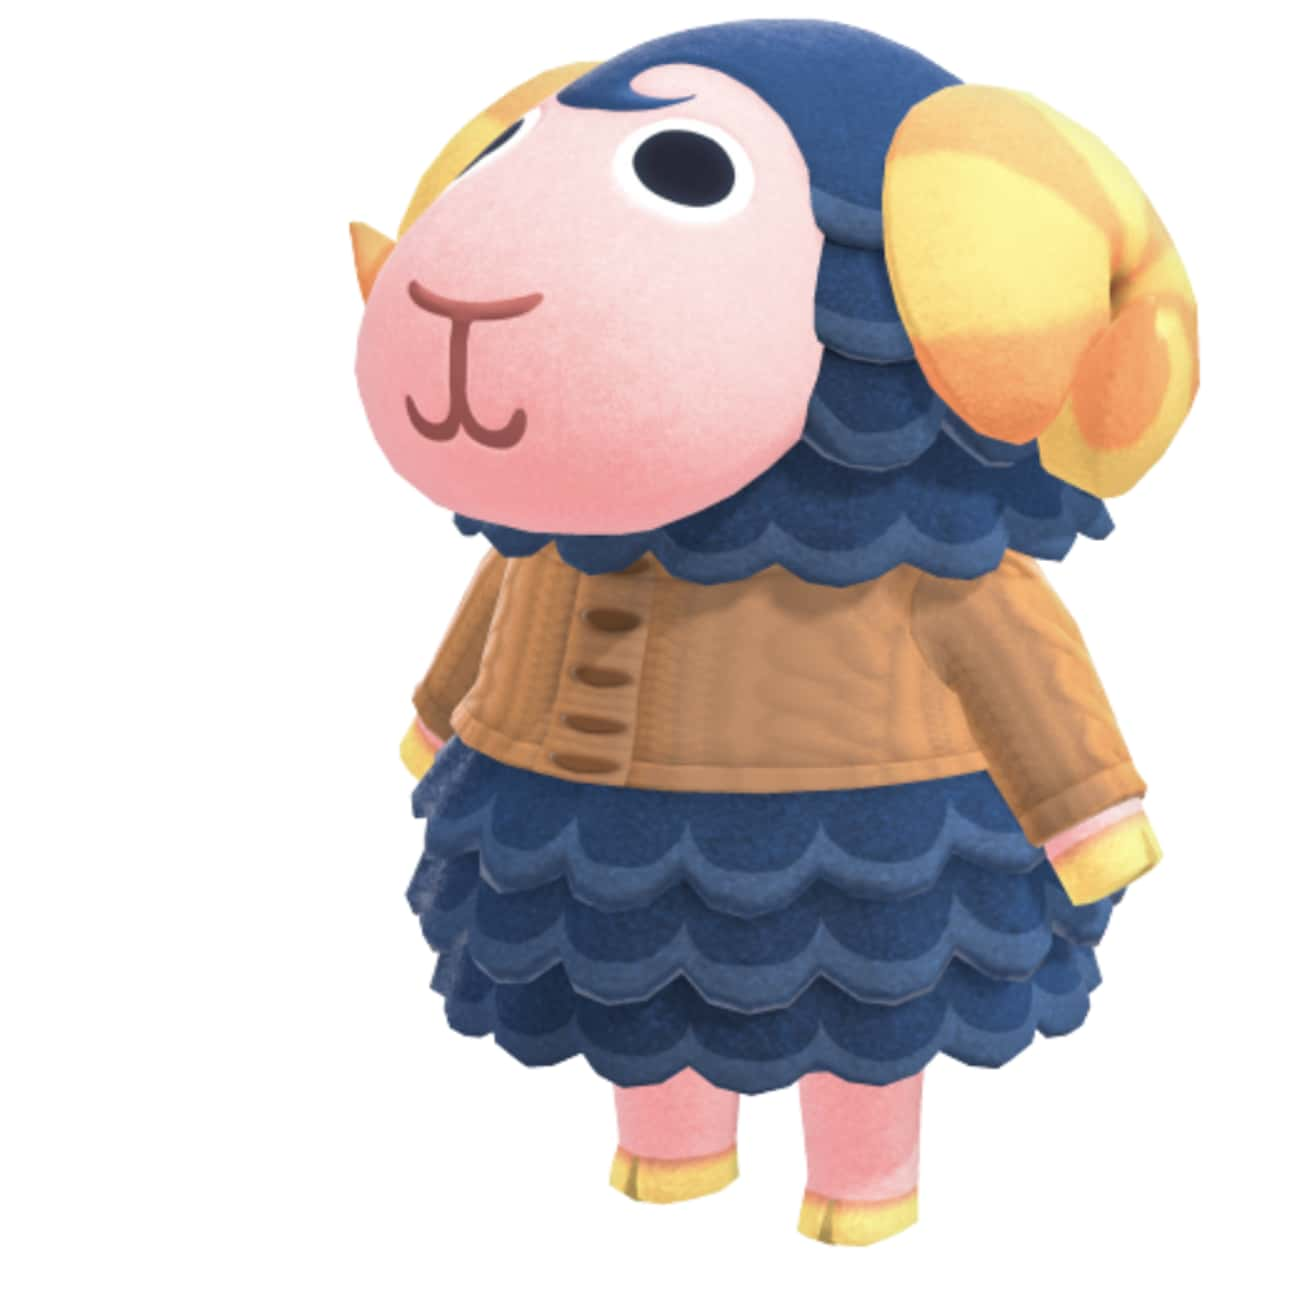 Eunice is listed (or ranked) 4 on the list Who's Your Favorite Sheep Villager In 'Animal Crossing: New Horizons'?